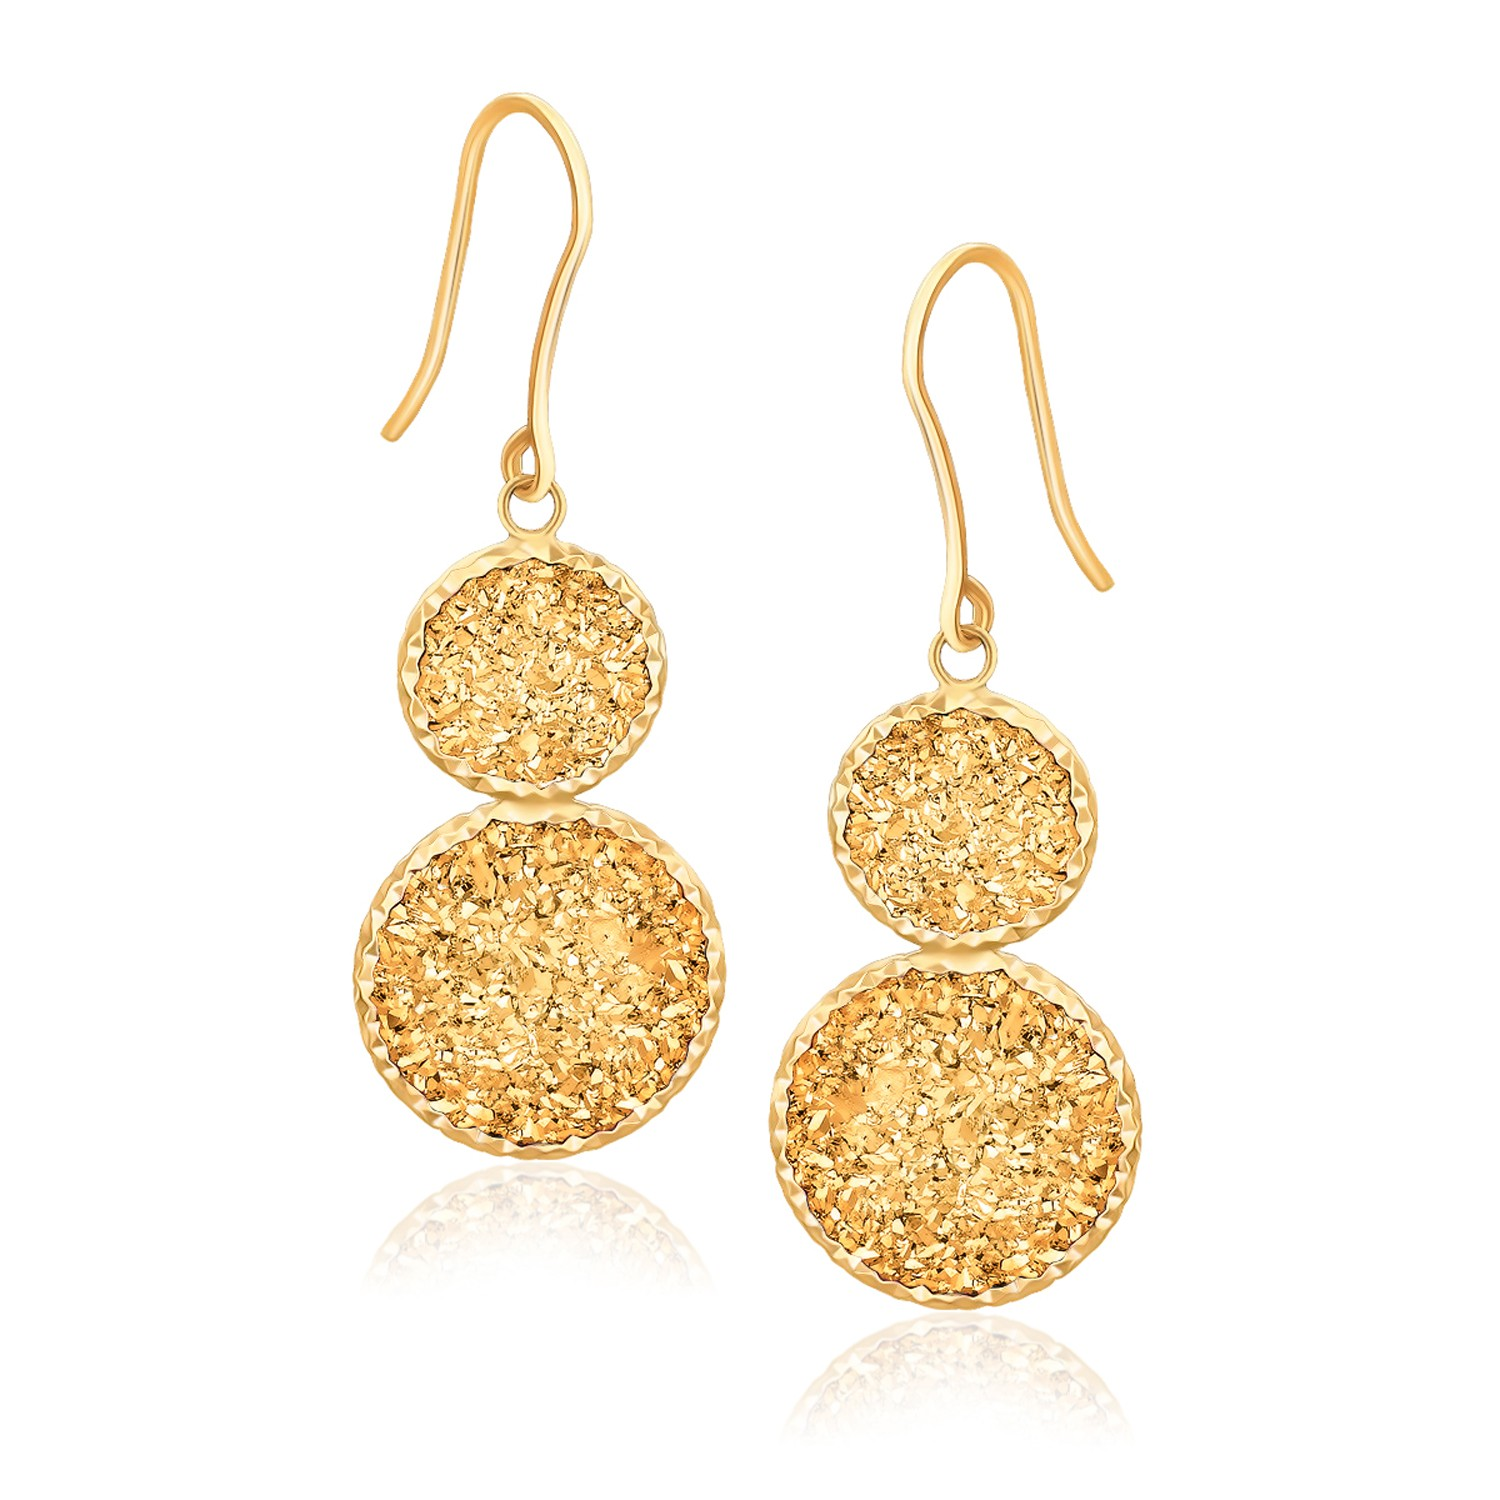 JJ FashionTrends 14K Yellow Gold Golden Drusy Double Drop Earring